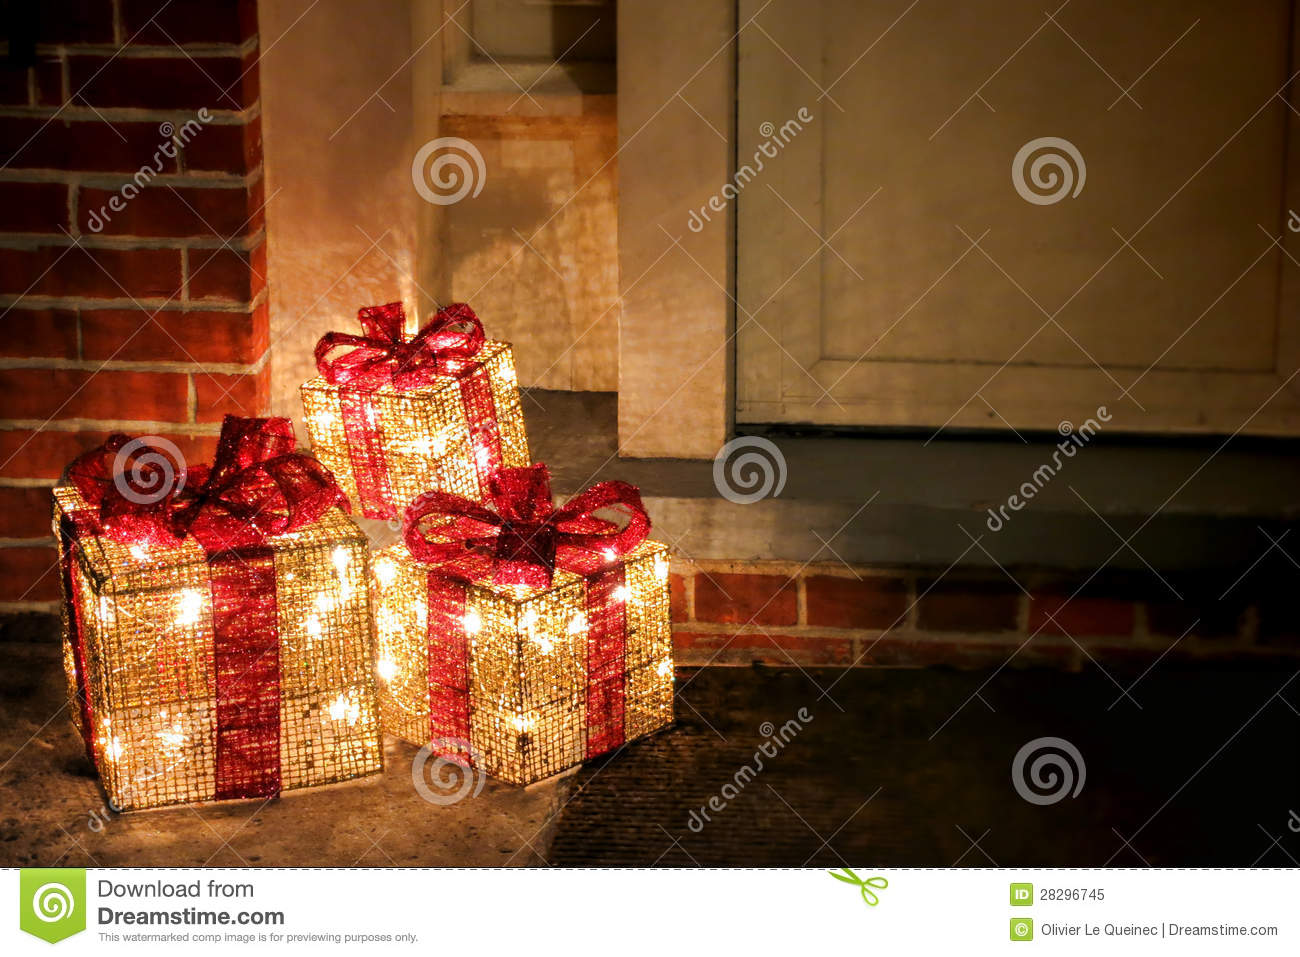 royalty free stock photo download lighted decorated christmas - Lighted Christmas Presents